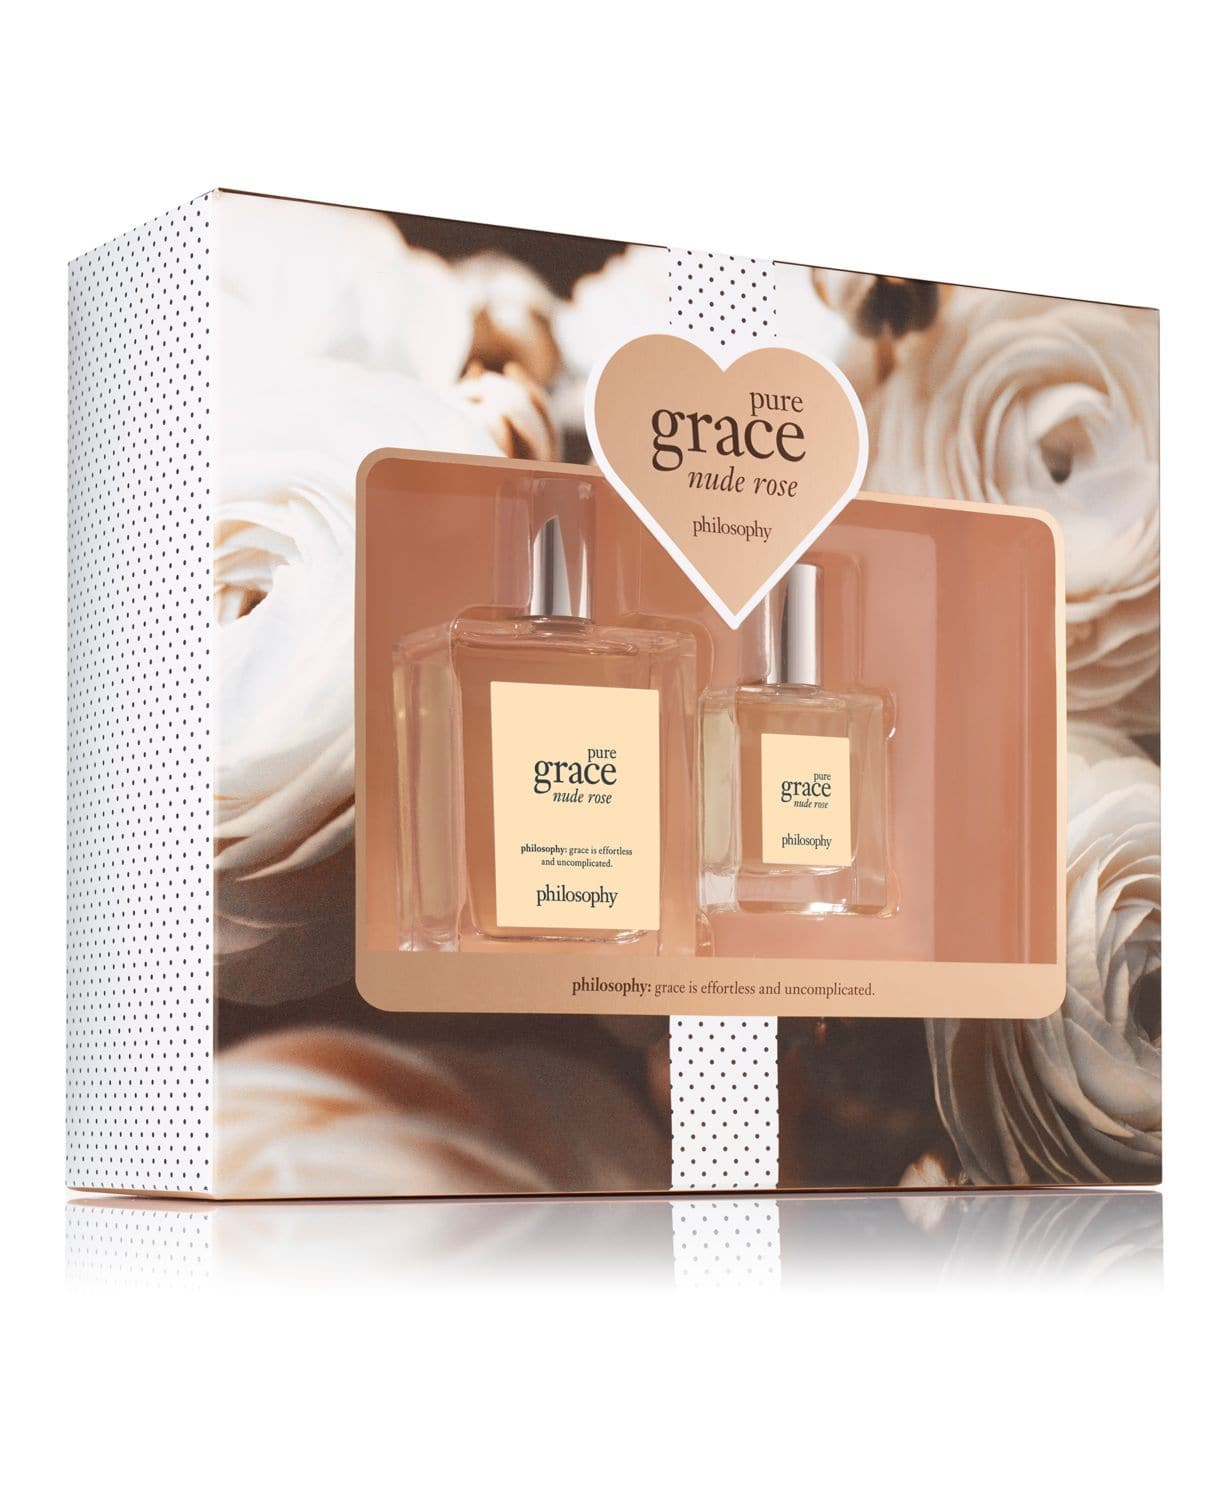 Macys Beauty Flash Sale: philosophy Pure Grace Nude Rose Eau de Toilette Gift Set $29.40, Clinique 5-Pc. Back To School Supplies Set $13.50, More + FS on $49+